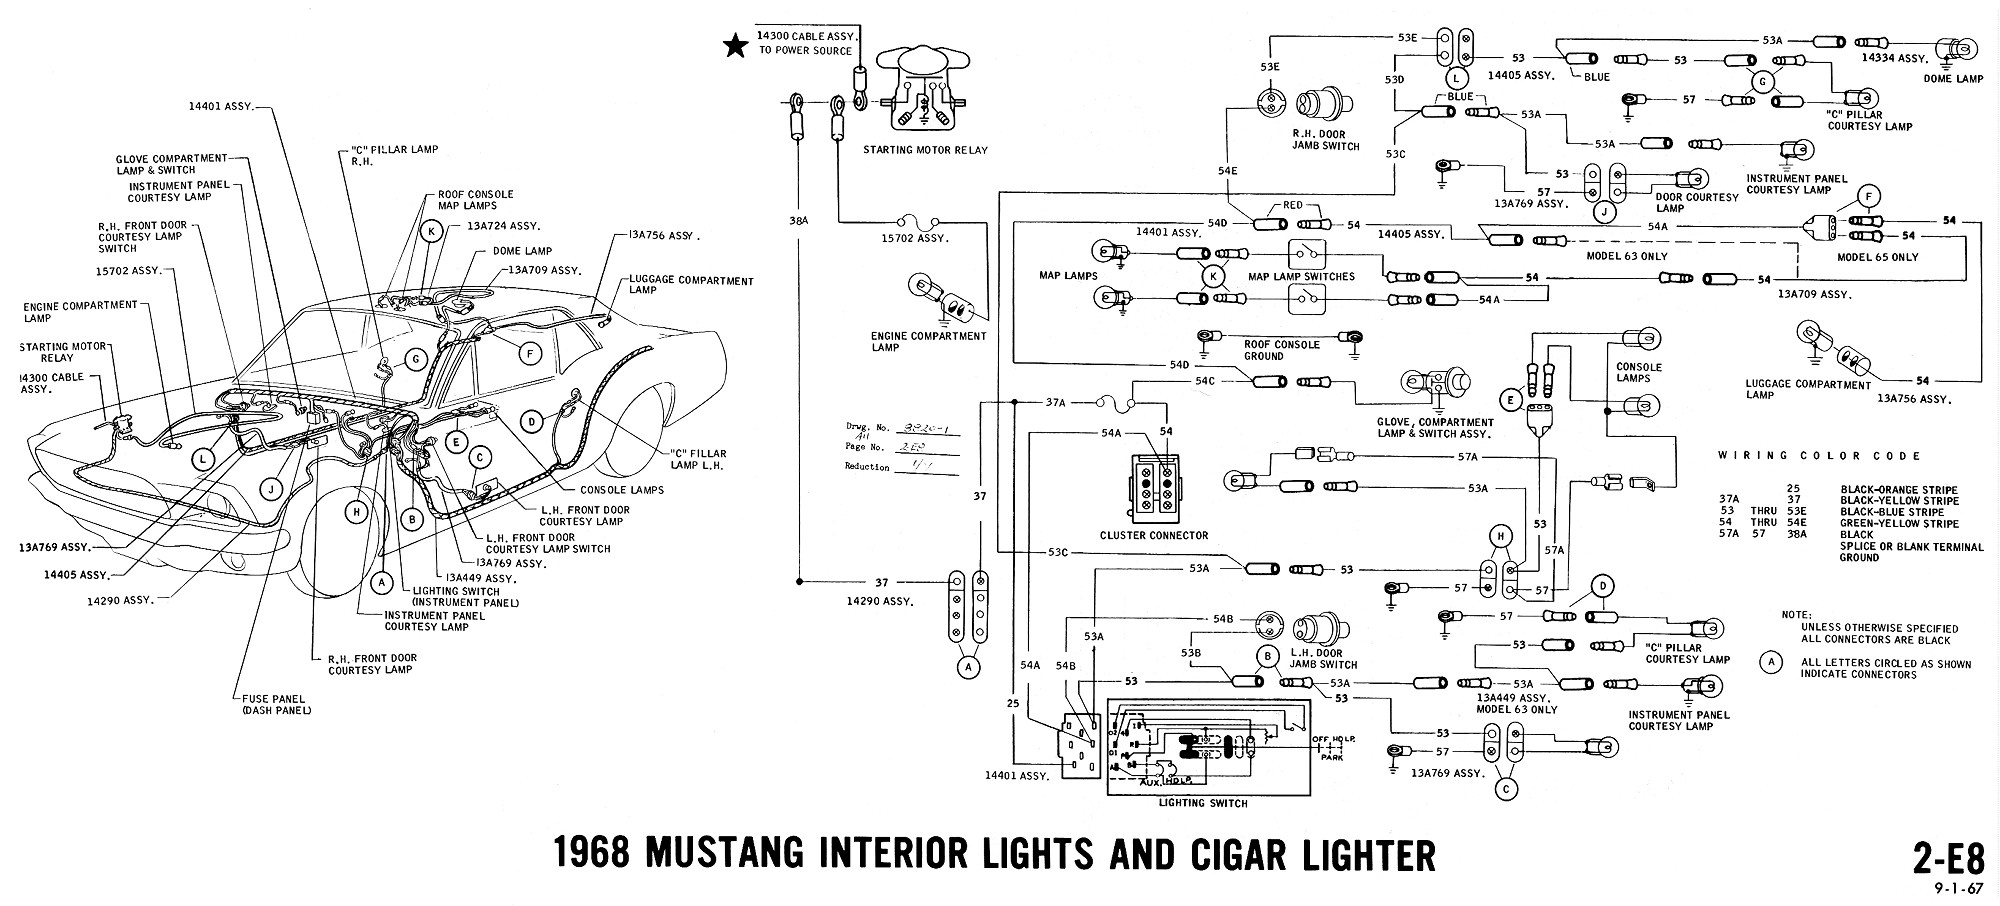 1968 mustang wiring diagram interior lights cigar lighter 1968 mustang wiring diagrams and vacuum schematics average joe mustang wiring harness diagram at gsmx.co